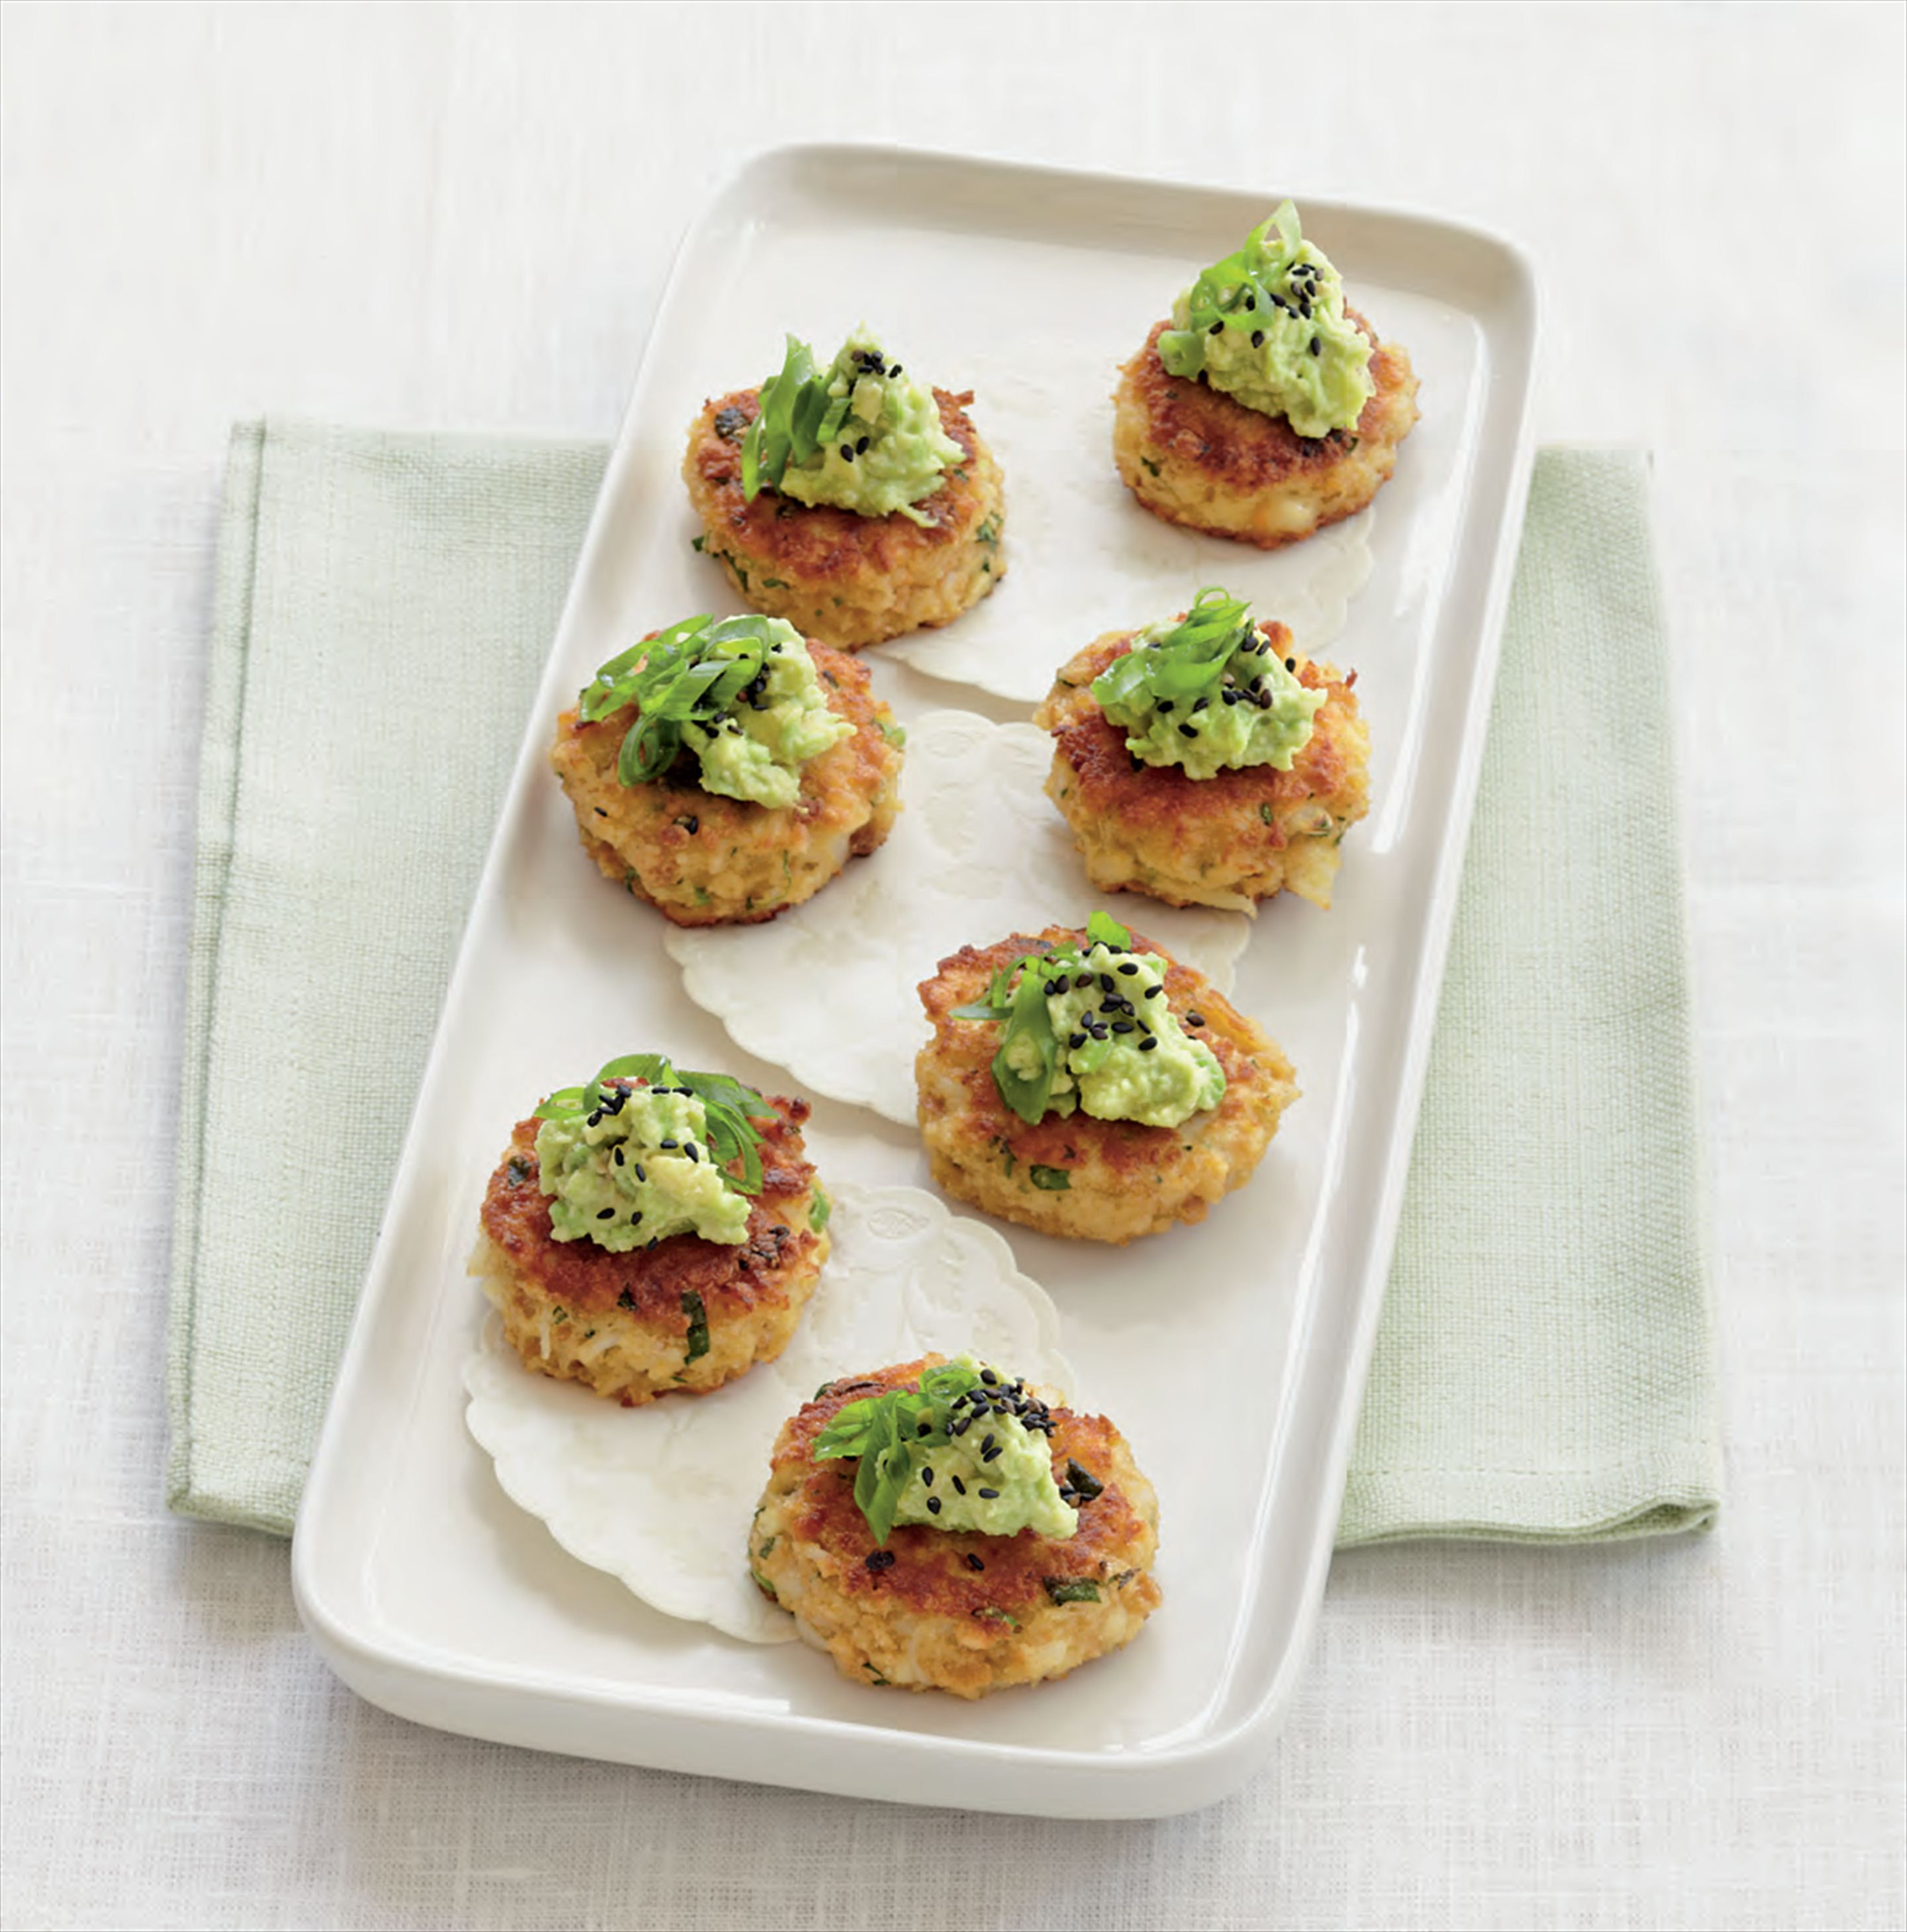 Crab cakes with wasabi avocado